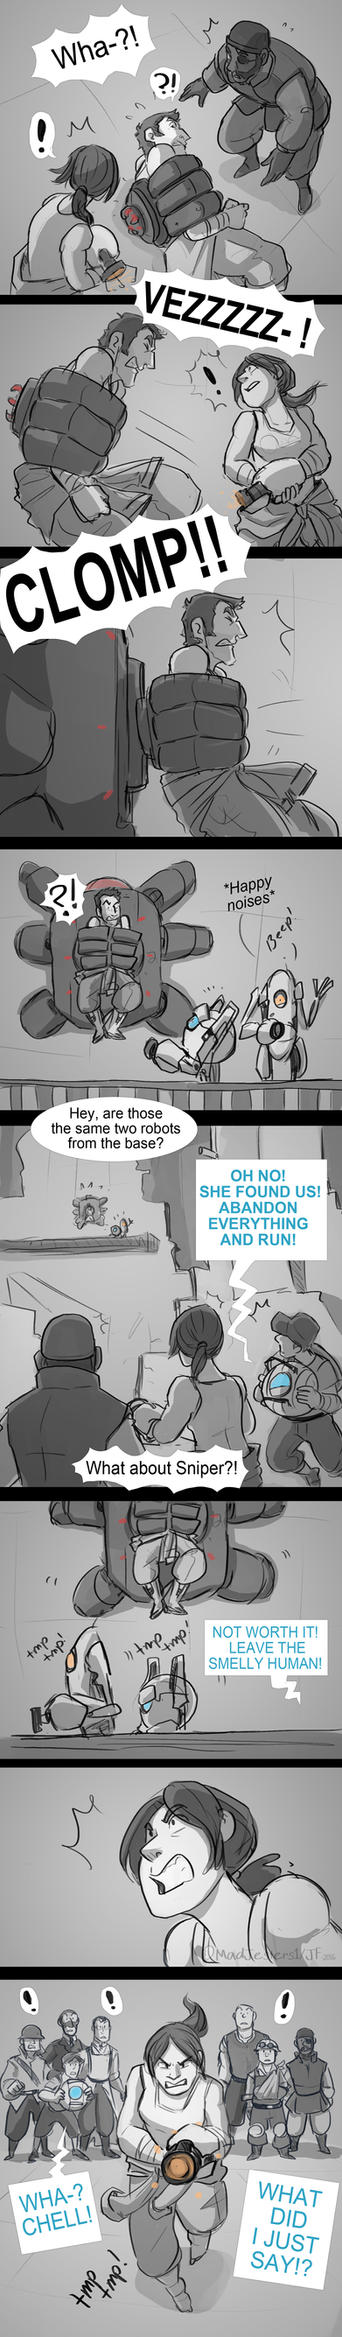 TF2-Long Lost Pg. 79 by MadJesters1